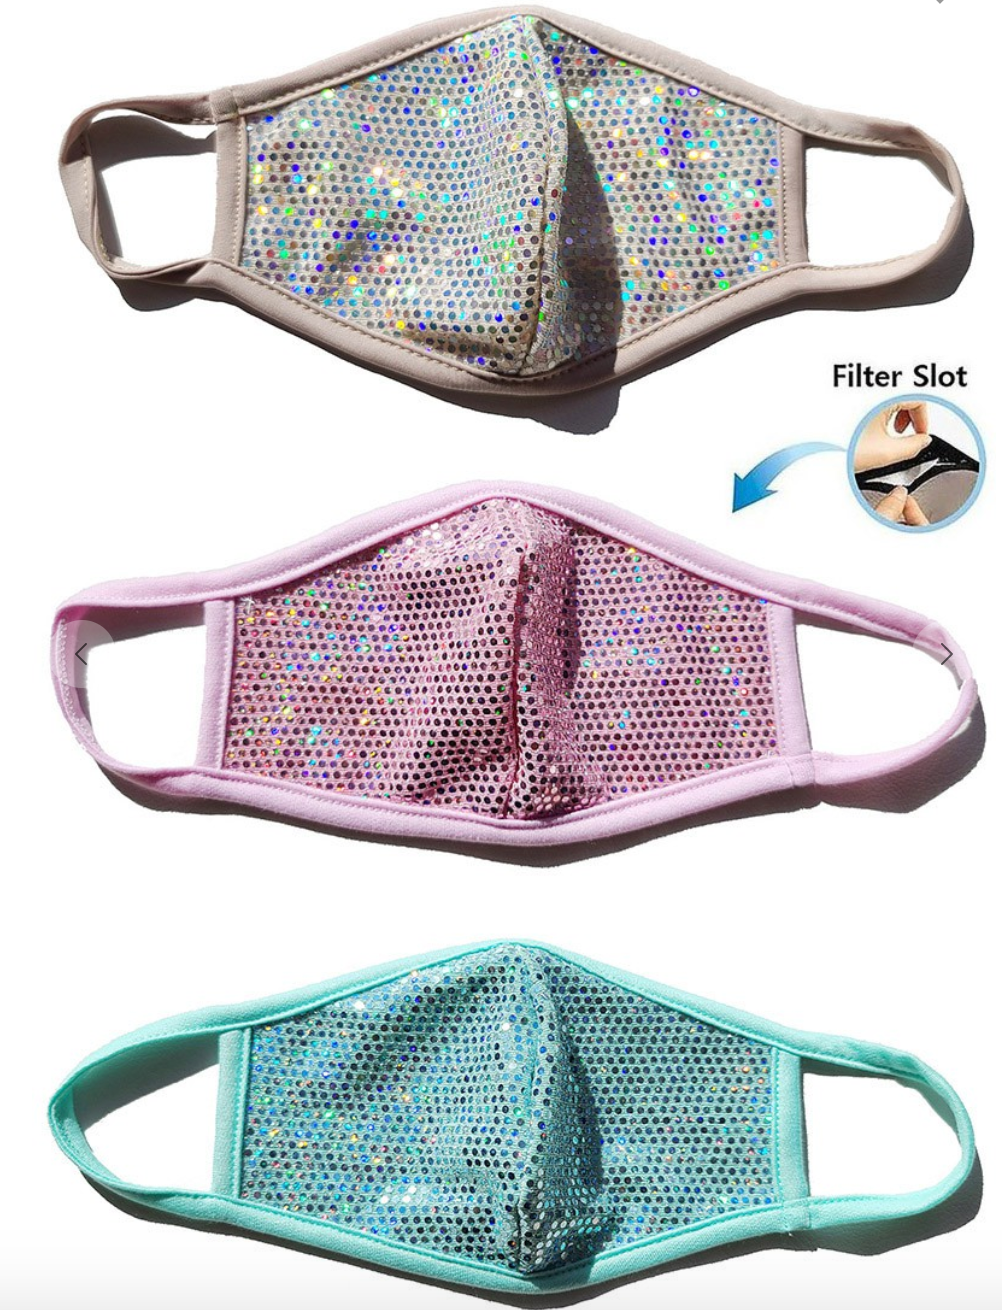 Reusable Sparkly Fashion Mask with Filter Slot